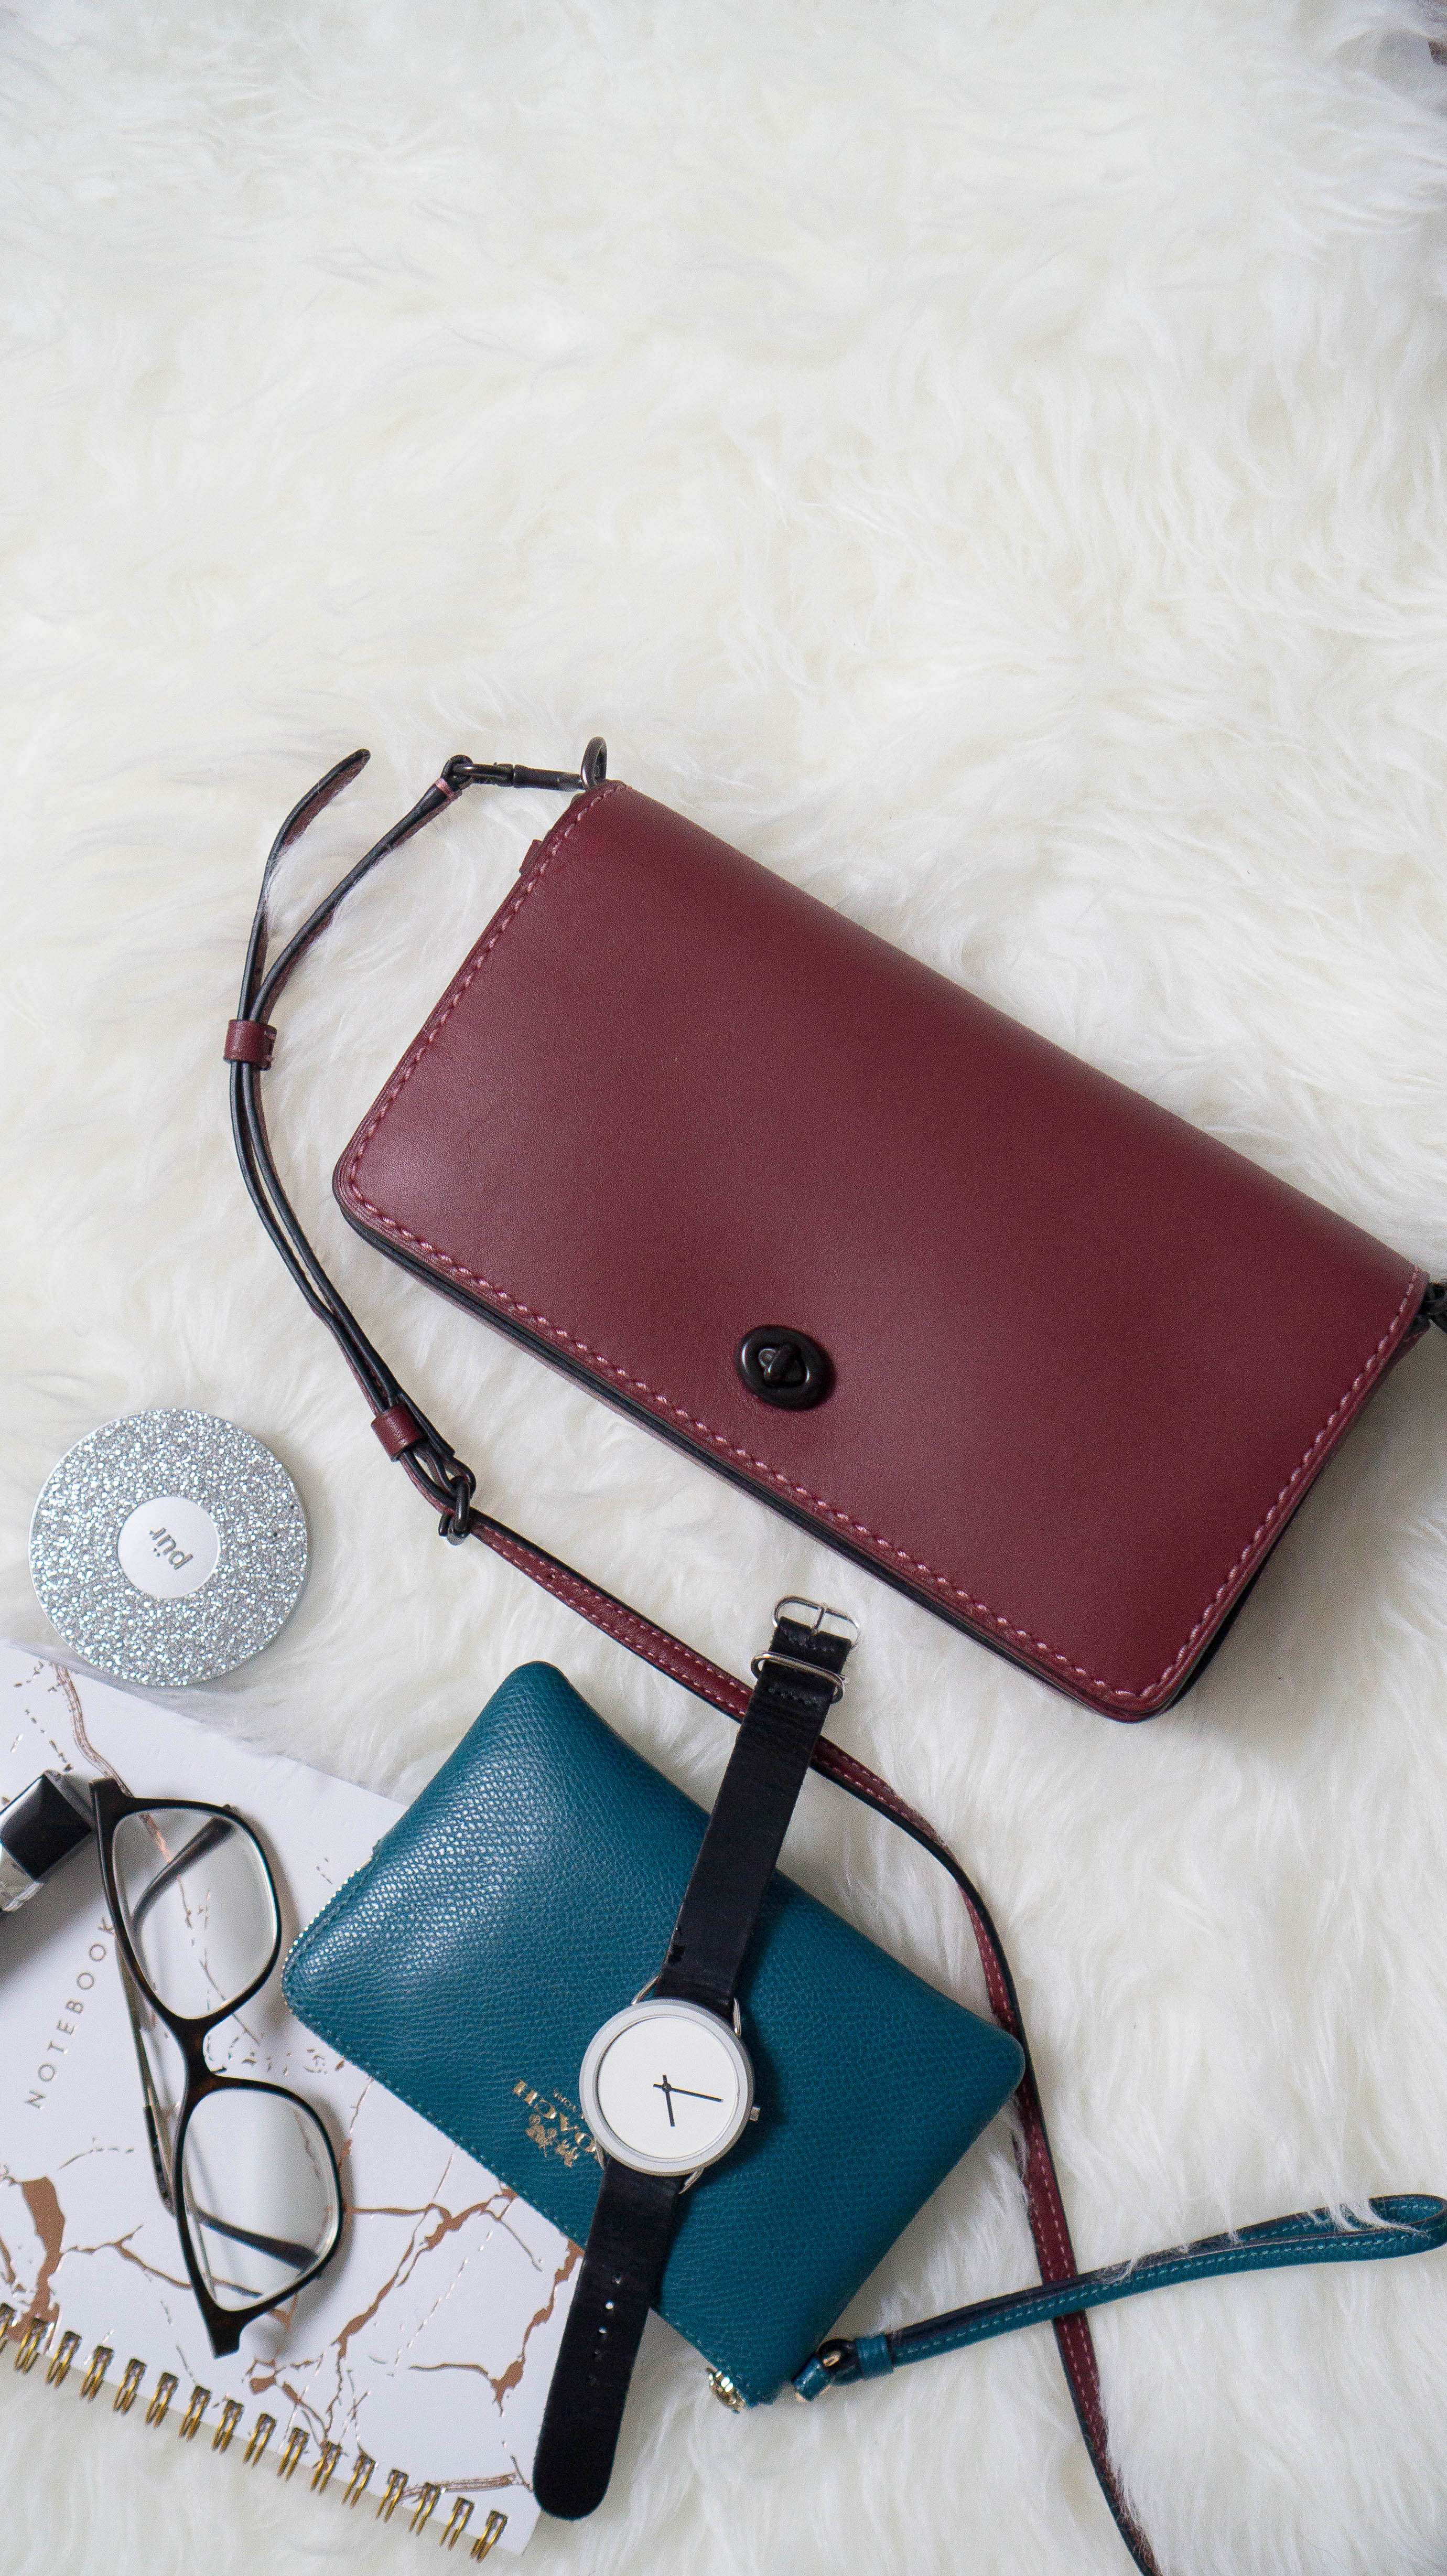 ed448fee034d The Coach Dinky is part of the Pre- Spring 2017 collection but it has a  timeless feel that you could wear throughout the year. My mini Coach  wristlet fits ...